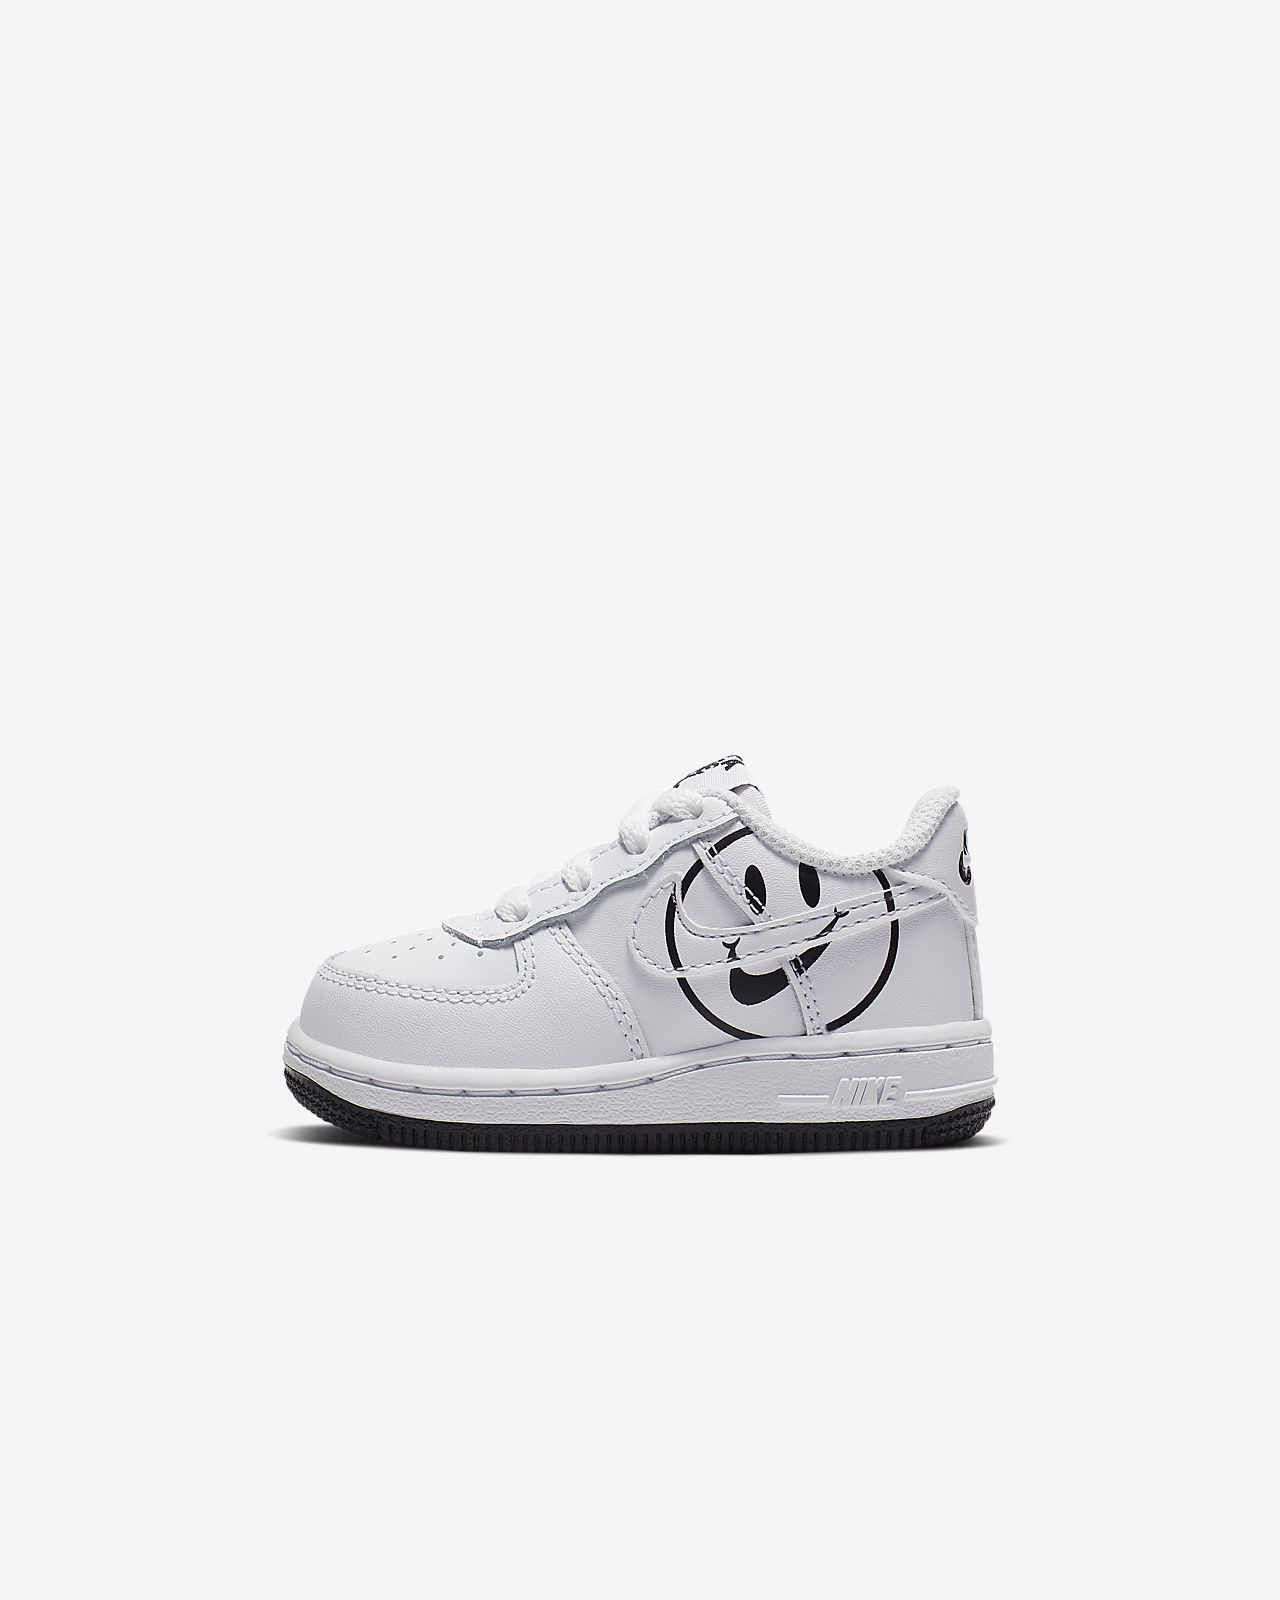 Nike Air Force I 06 InfantToddler Shoe